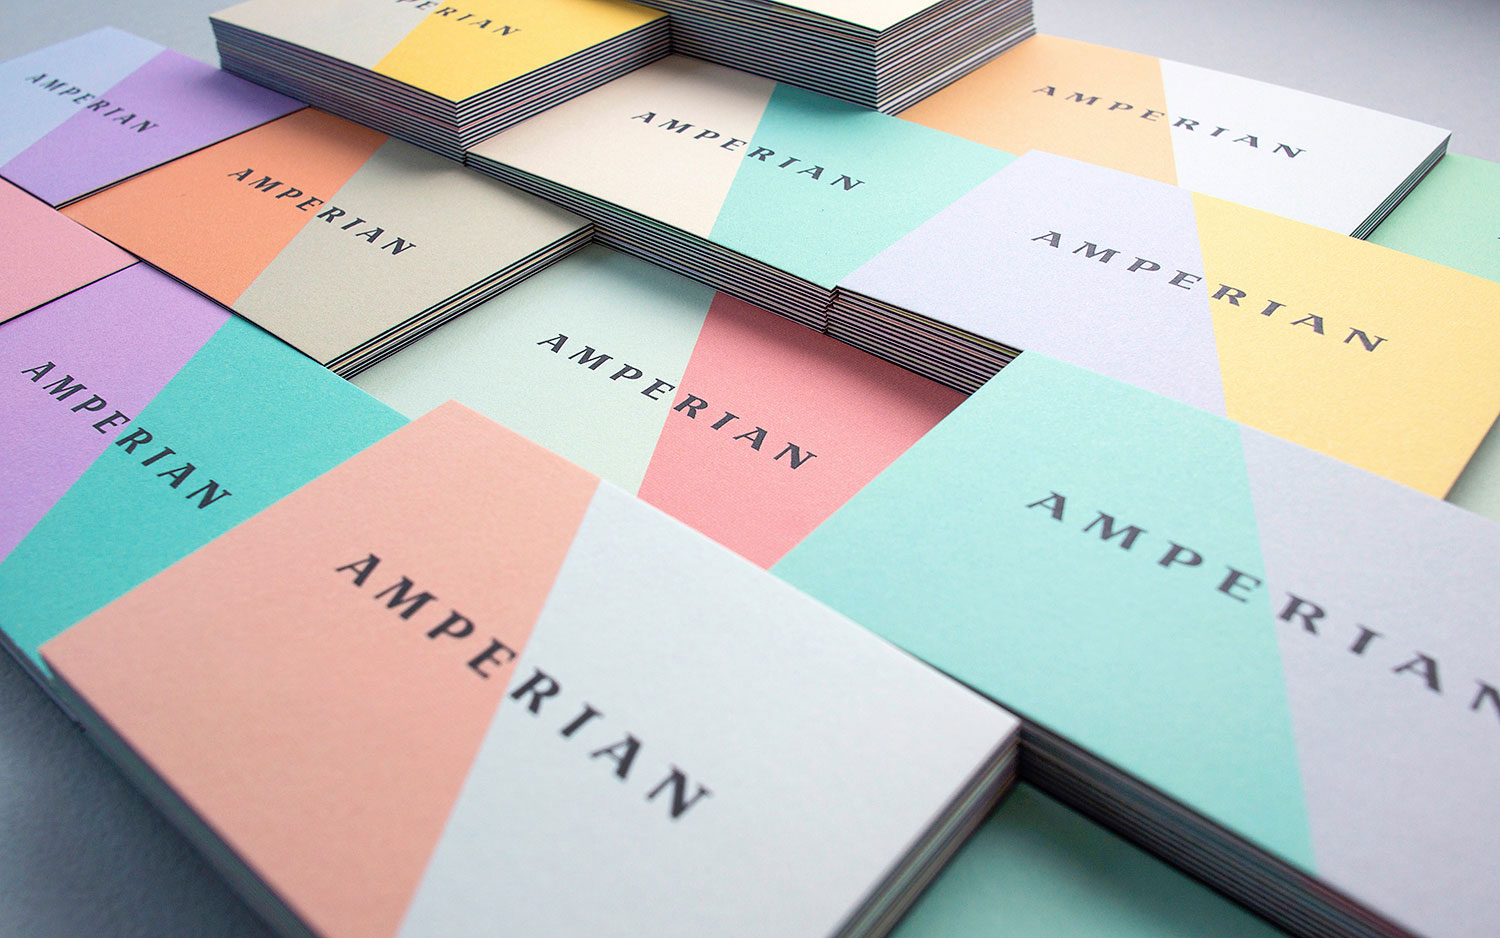 Amperian SG branding corporate identity design - Business cards. Photography by BÜRO UFHO.